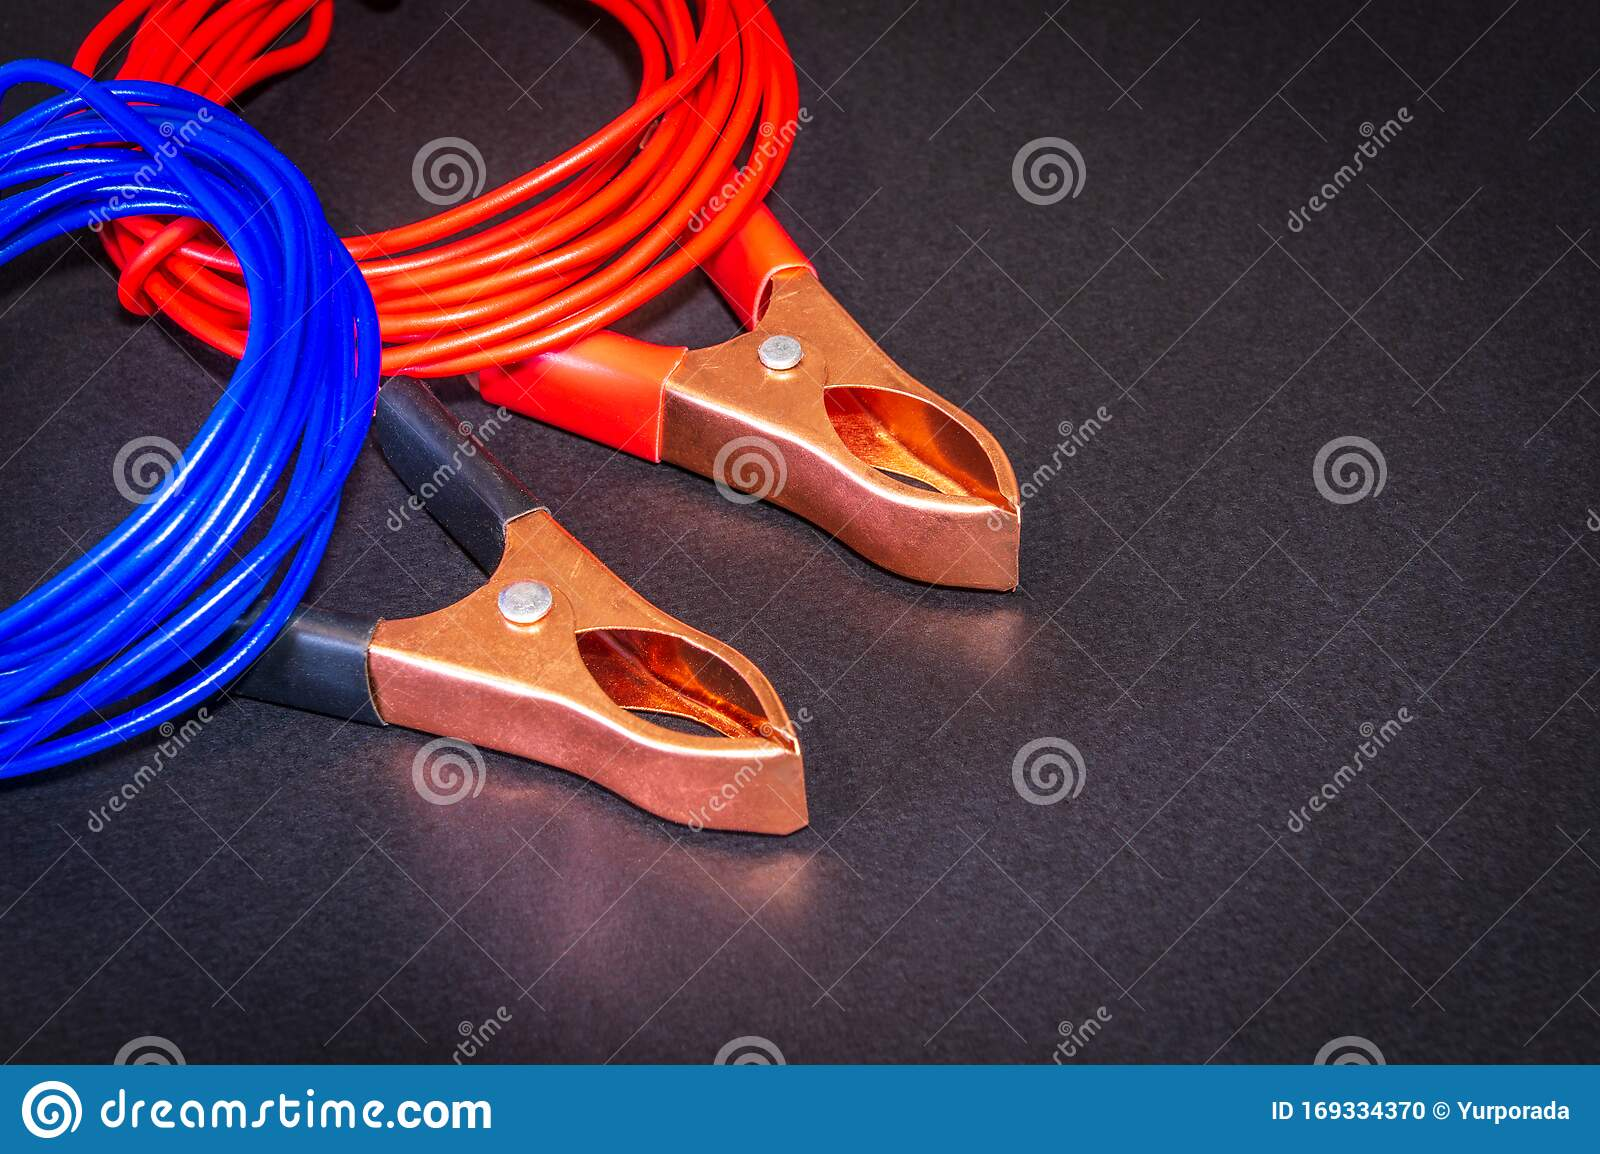 Multicolored Wires And Alligator Clips Prepared For Master Electrician Stock Photo Image Of Plug Insulation 169334370